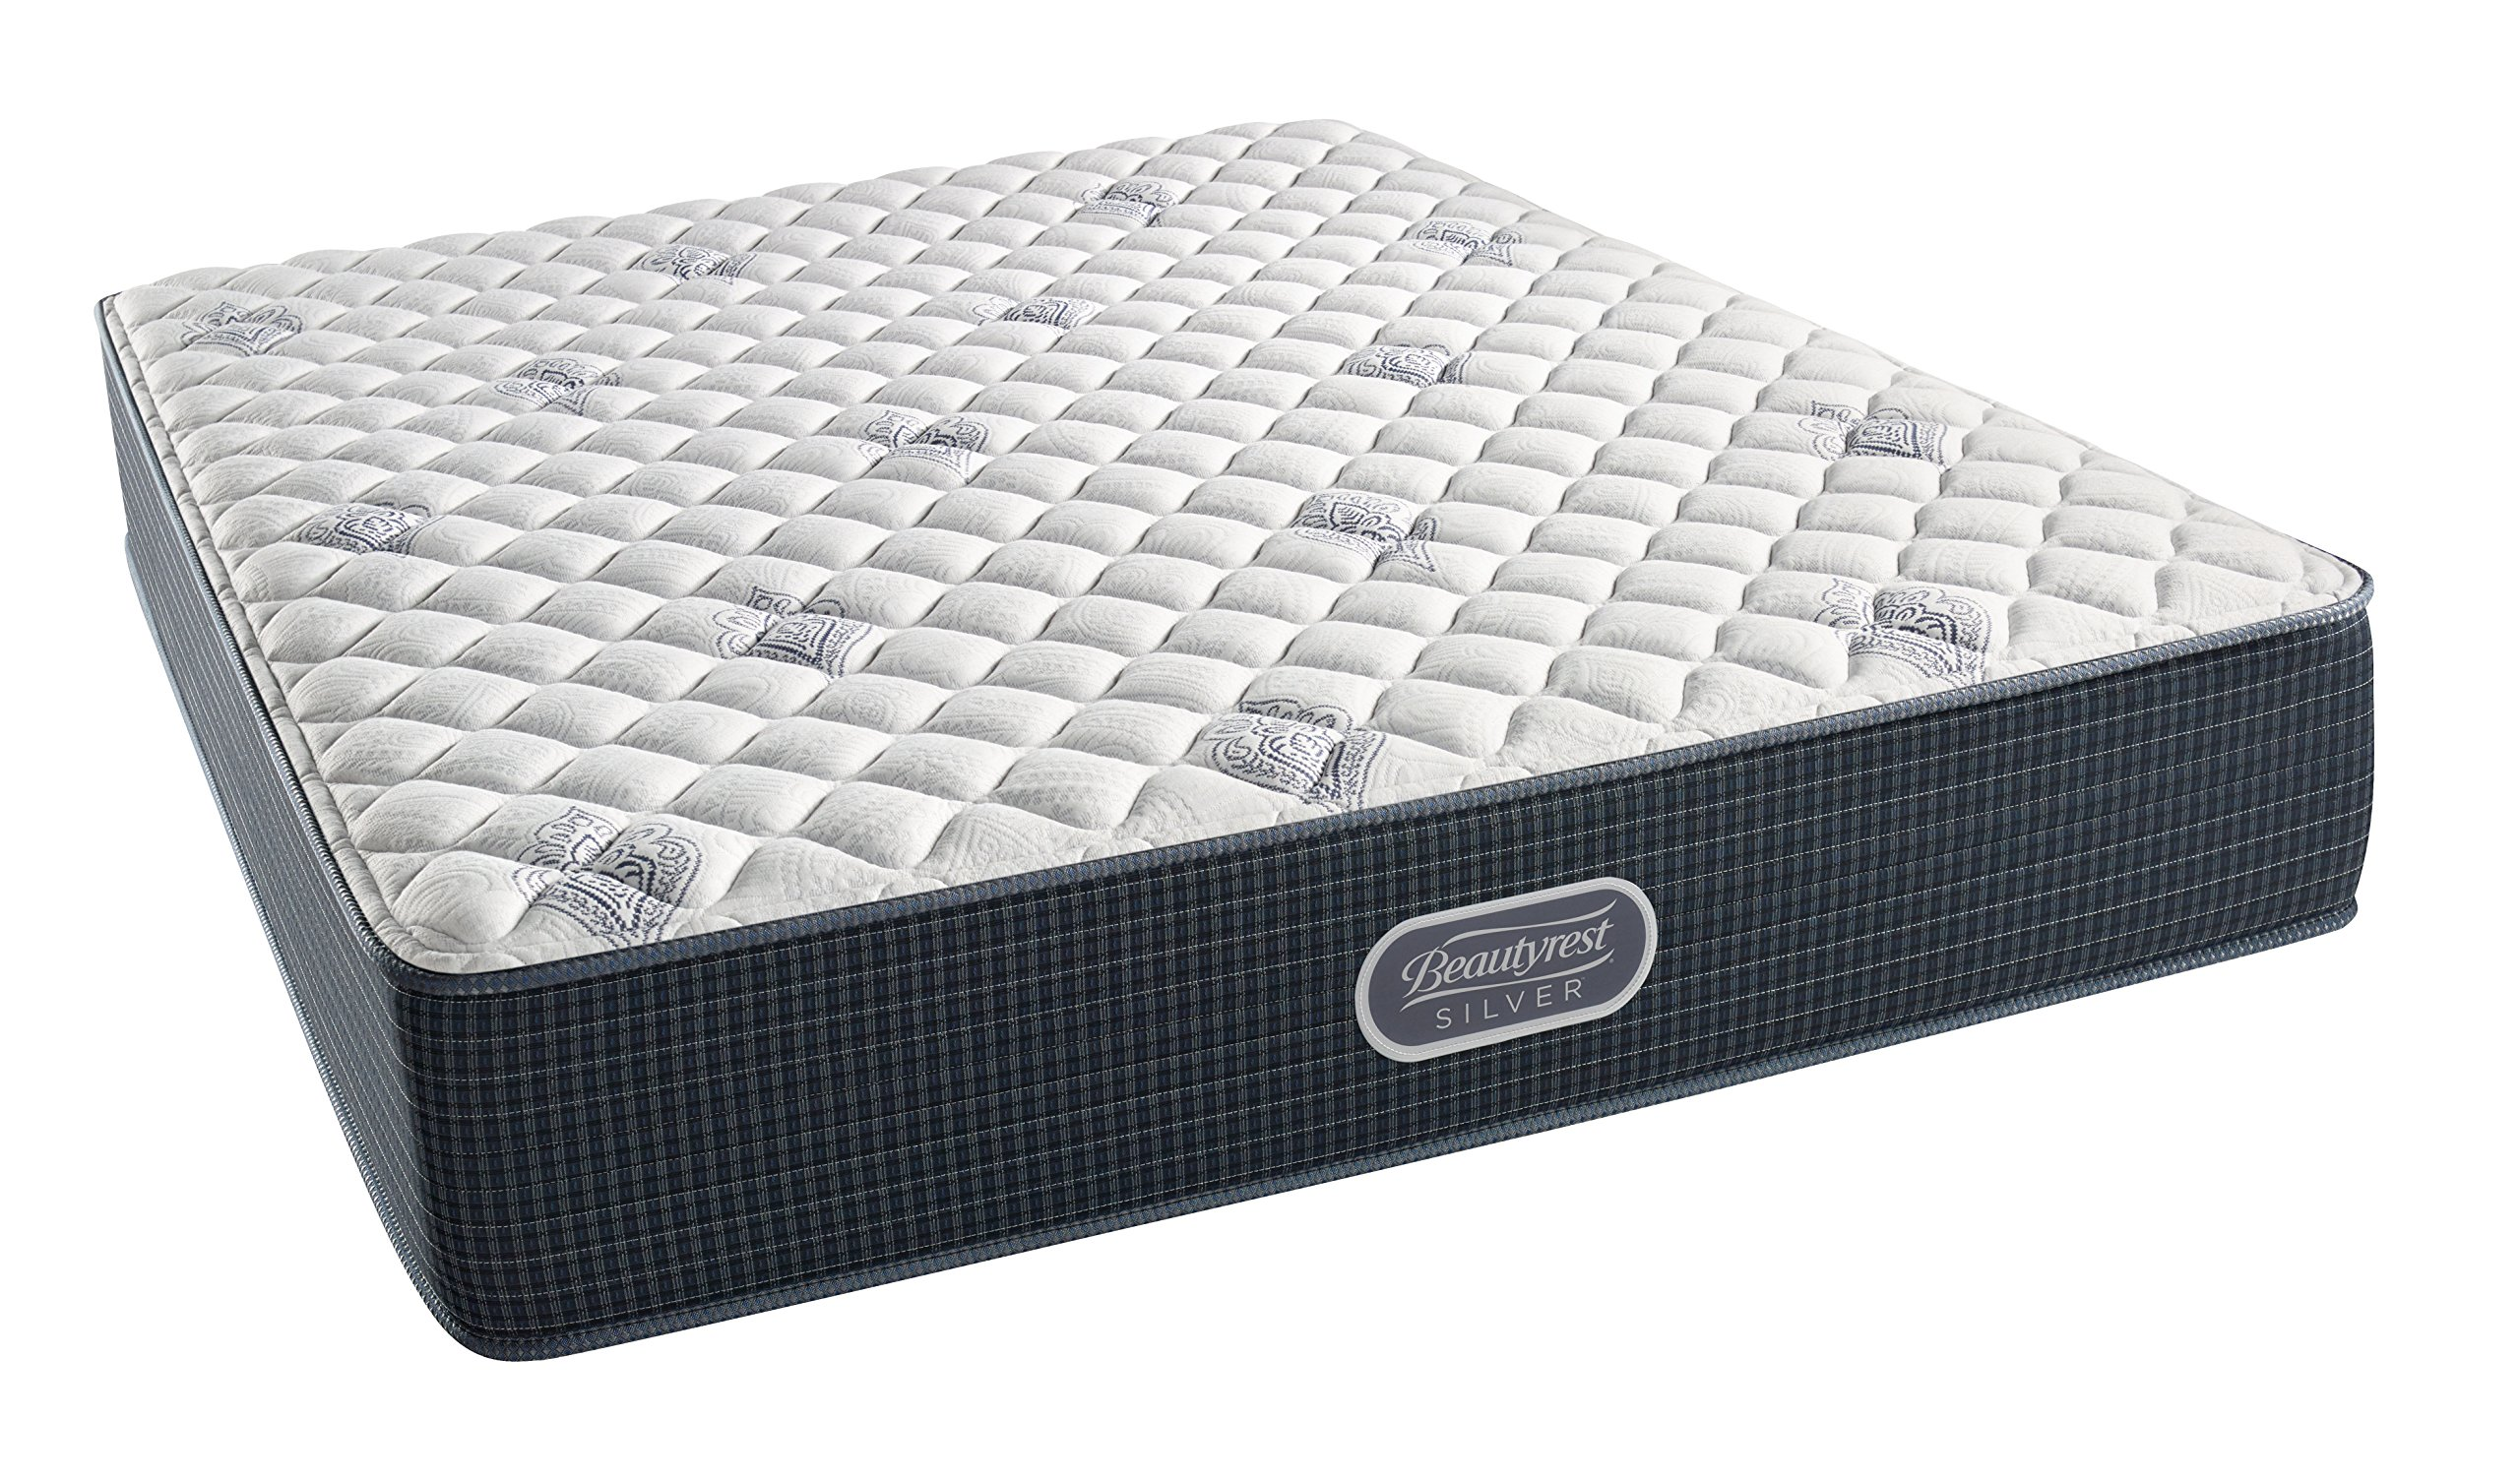 Top 3 Best Mattresses For Back And Neck Pain Mattress Ever